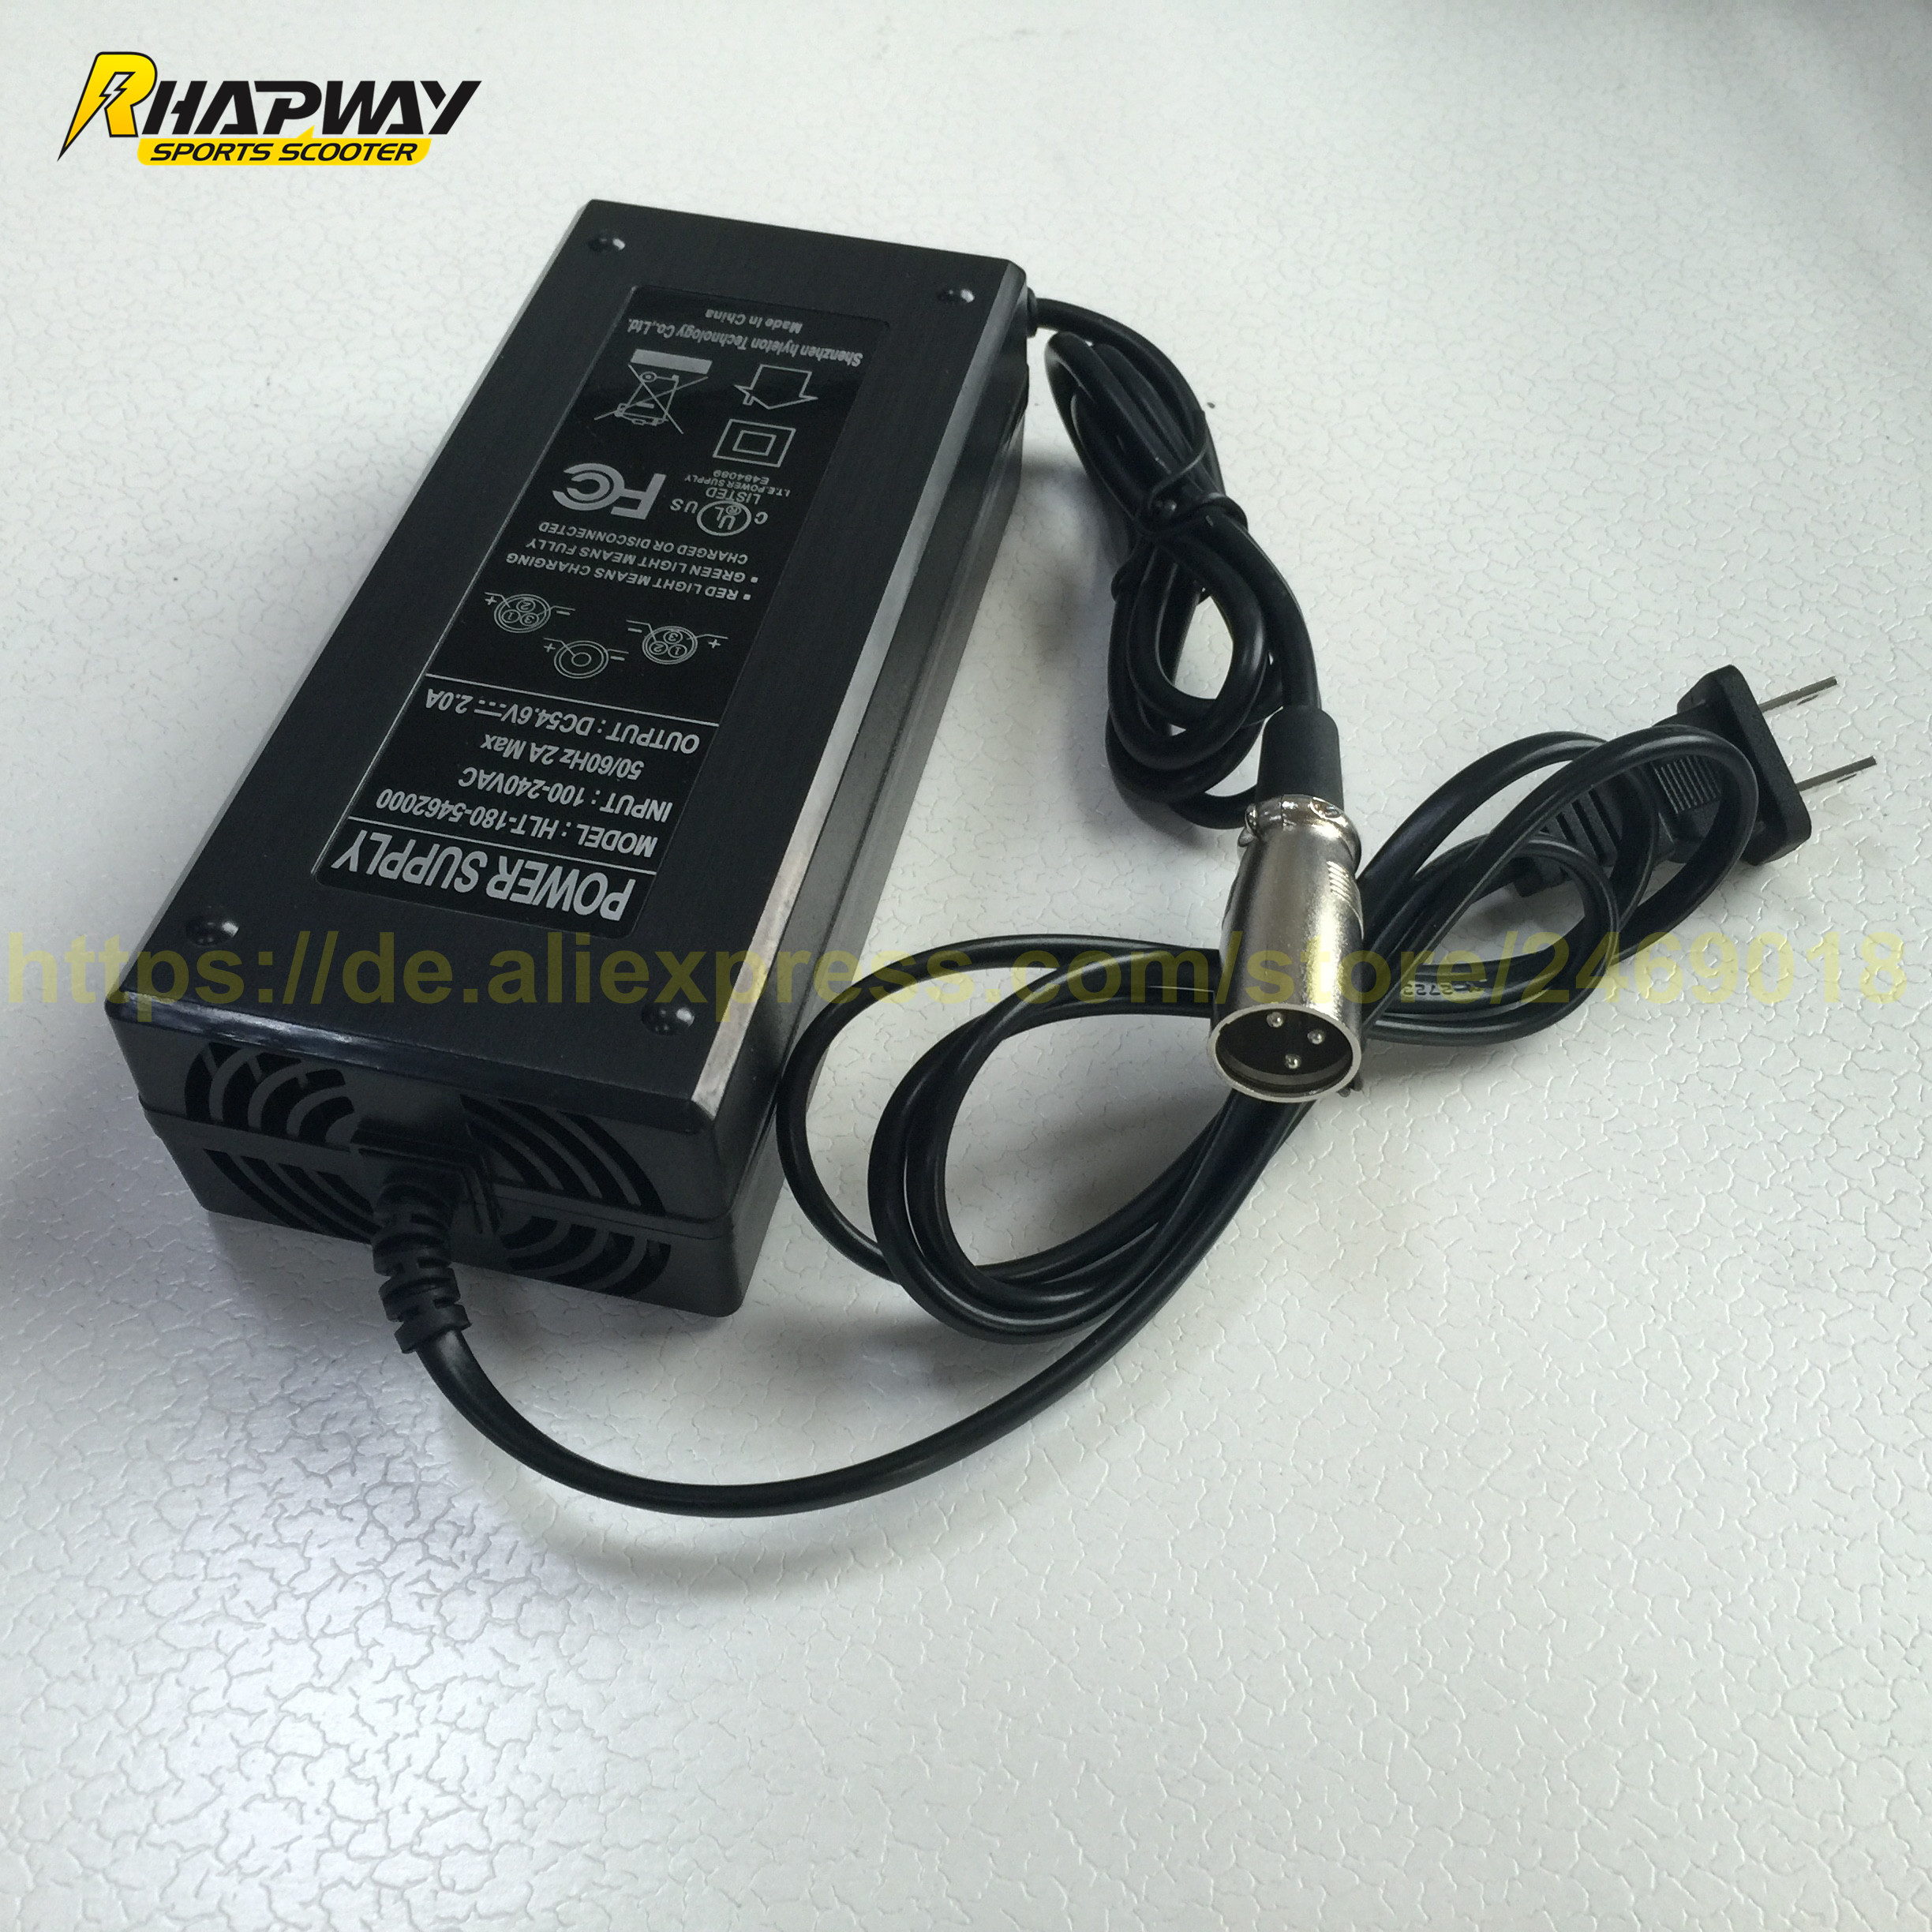 546V 2A Lithium Battery ChargerLithium Electric Scooter